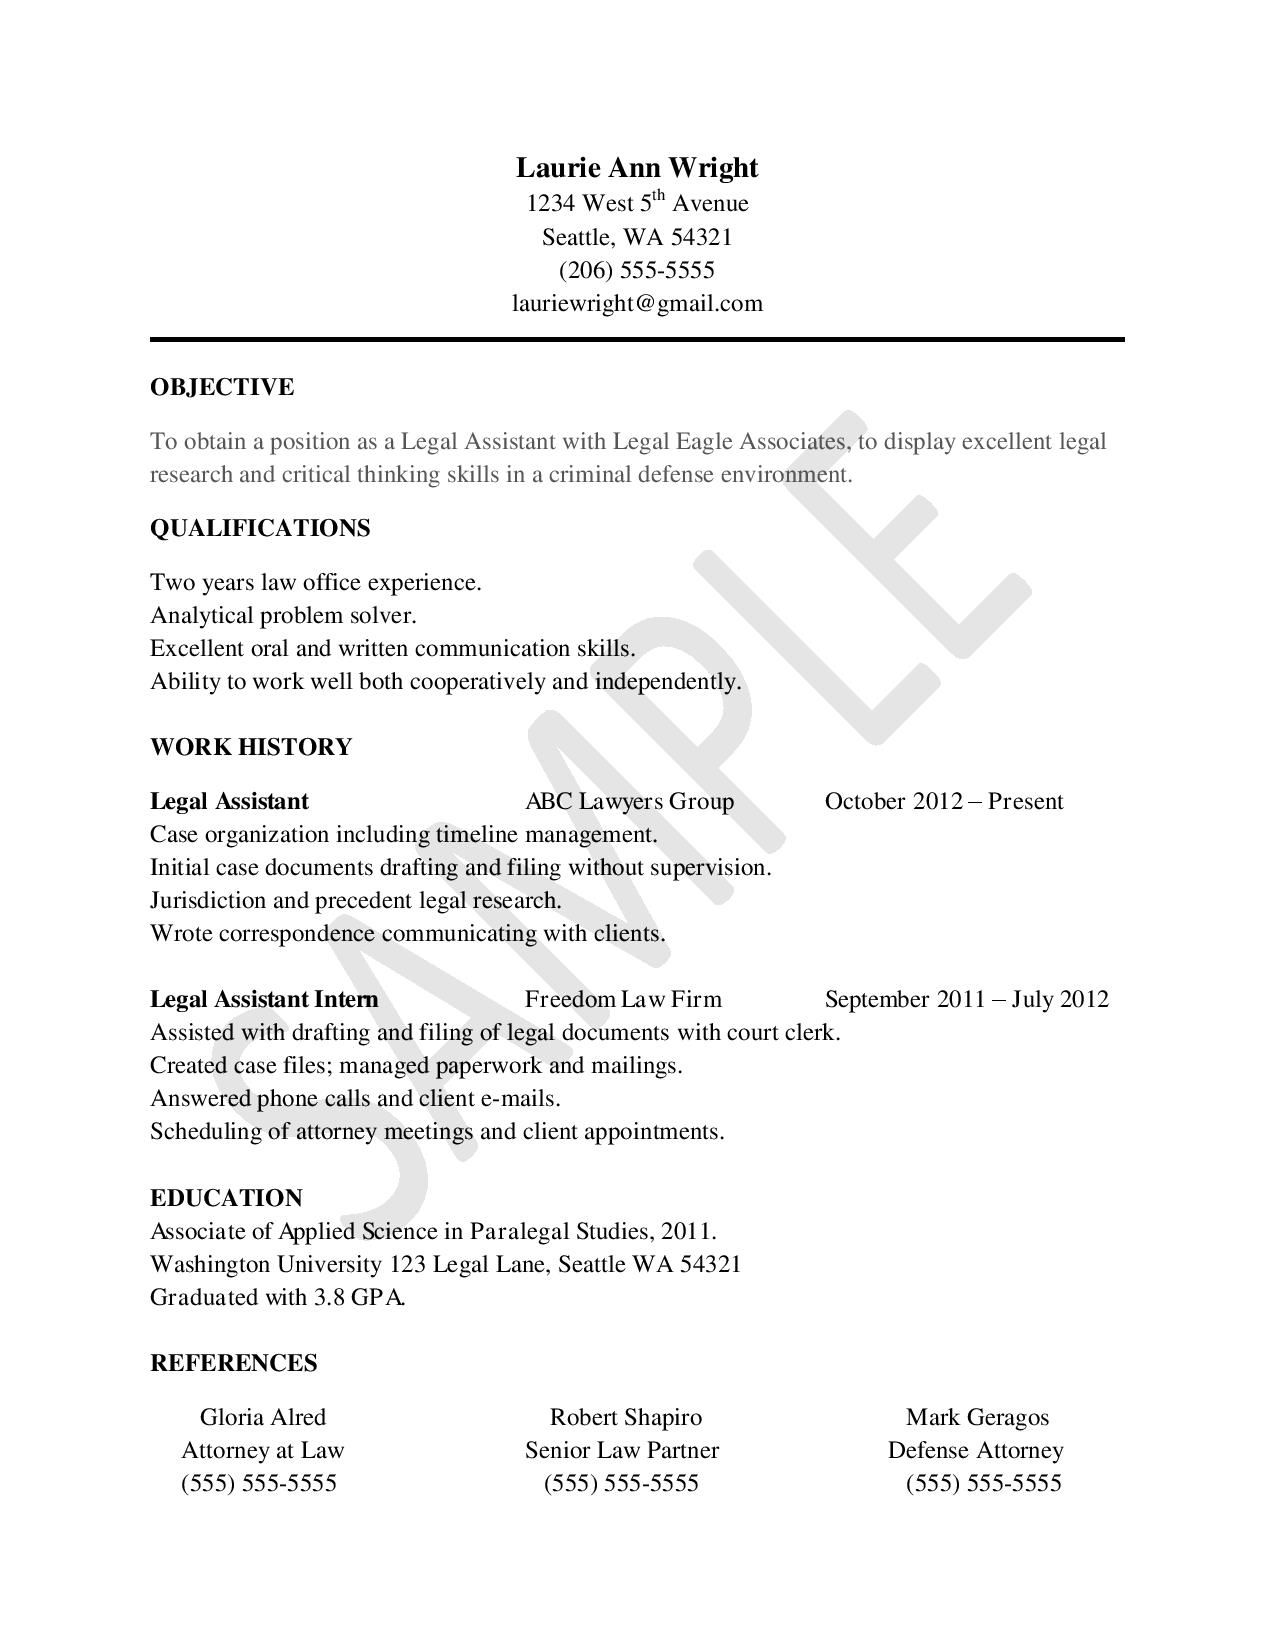 How To Format References On A Resume Sample Resume For Legal Assistants  Legalassistant